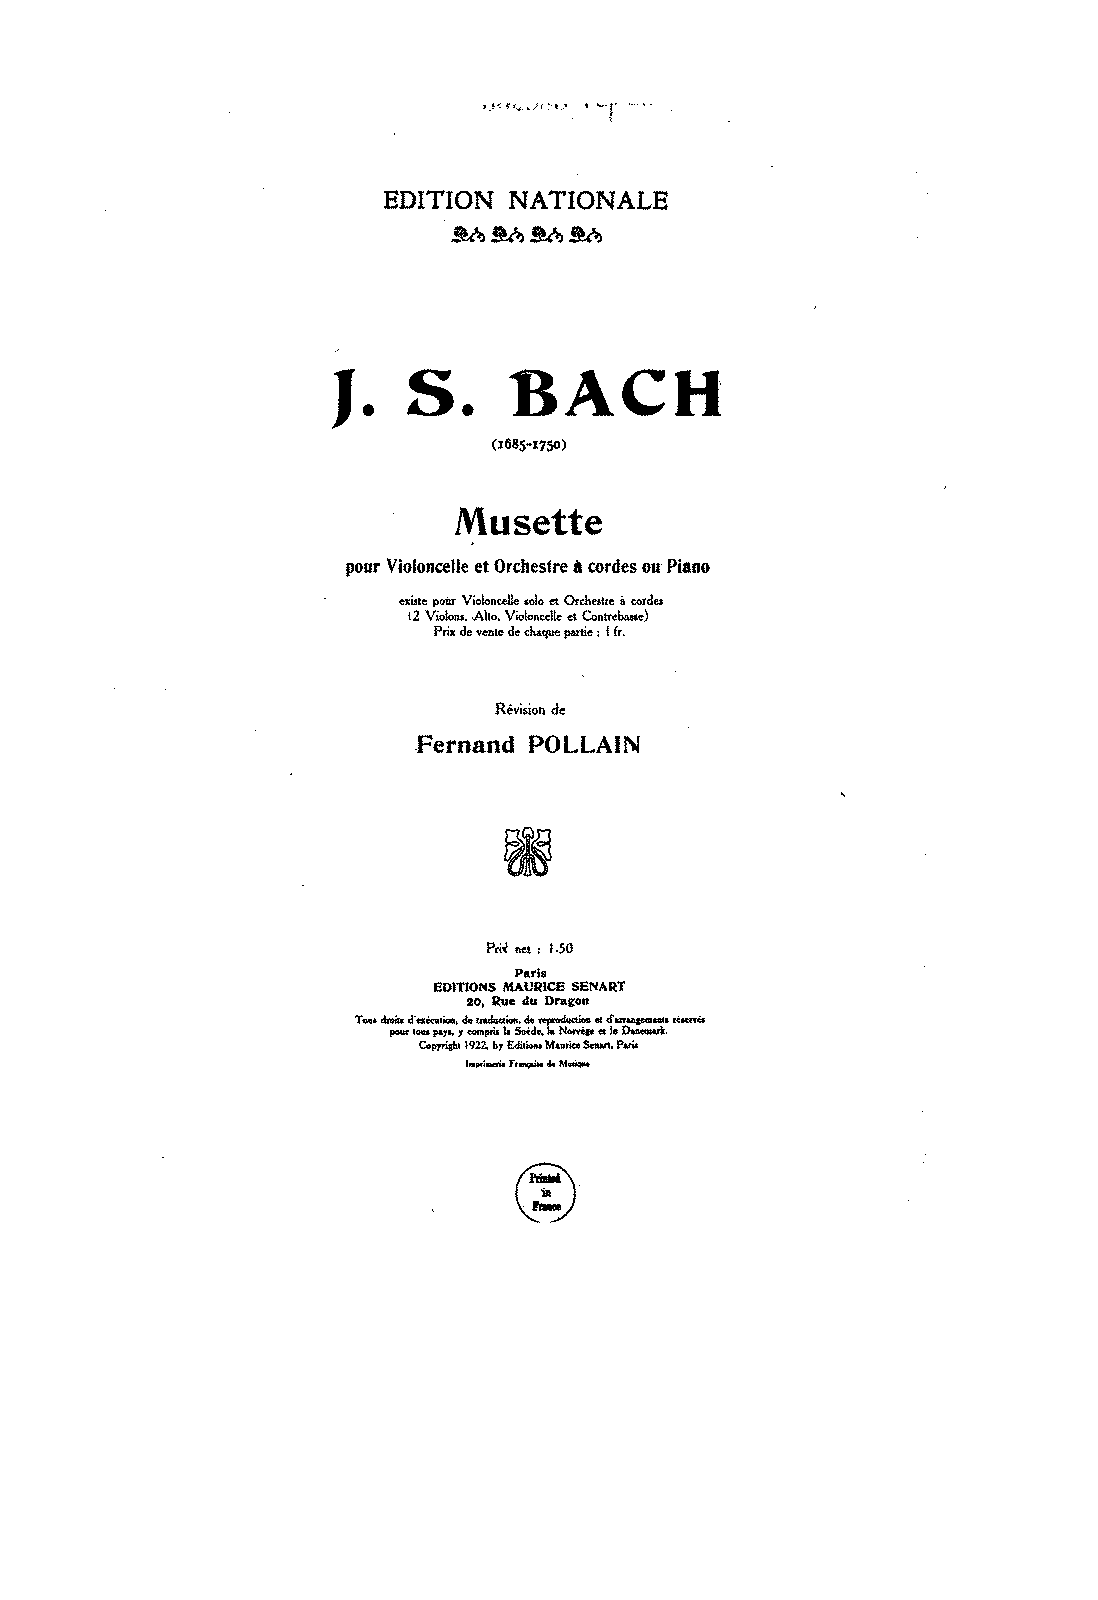 PMLP142593-Bach - Musette for Cello and String Orchestra or Piano (Pollain) score.pdf